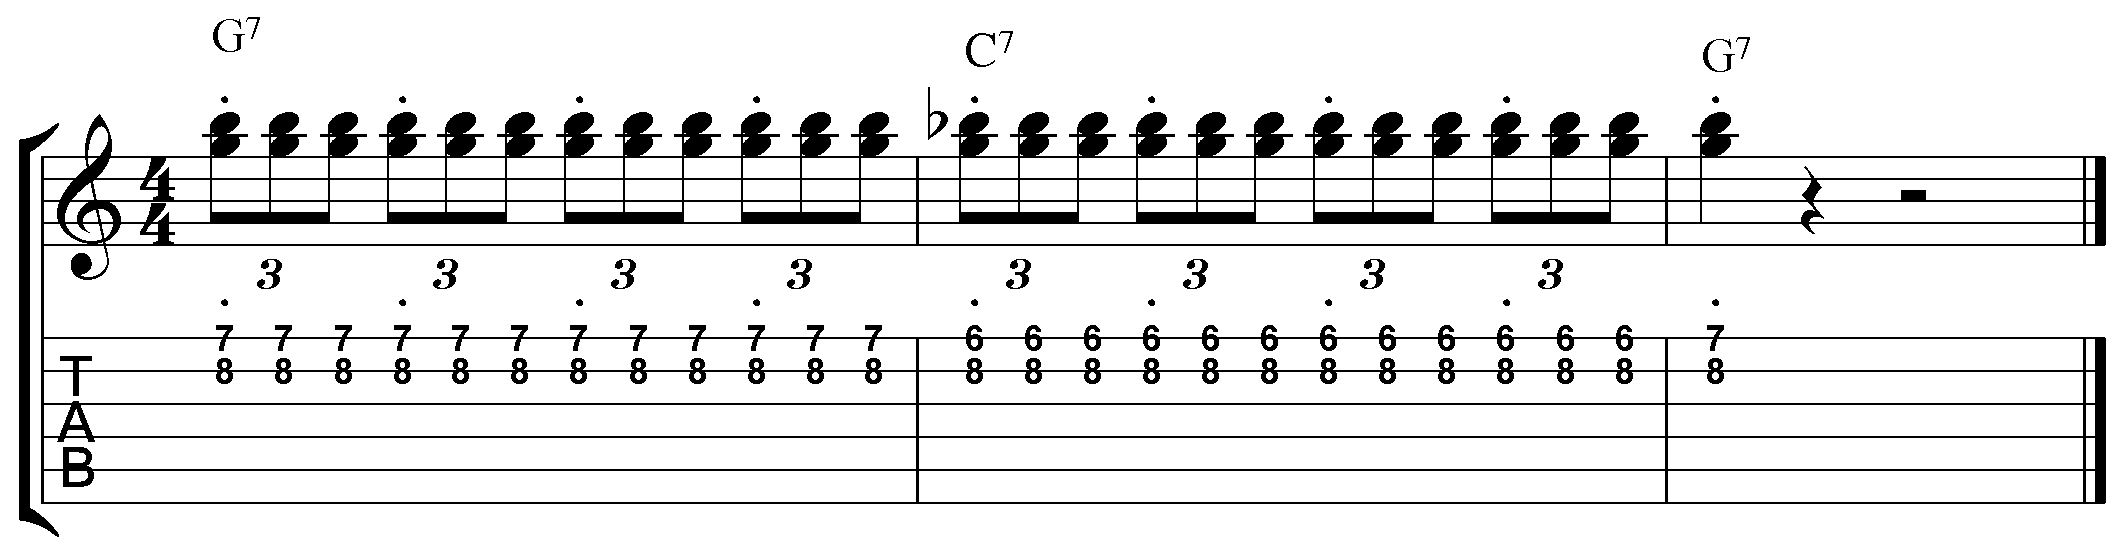 blues licks major chord position